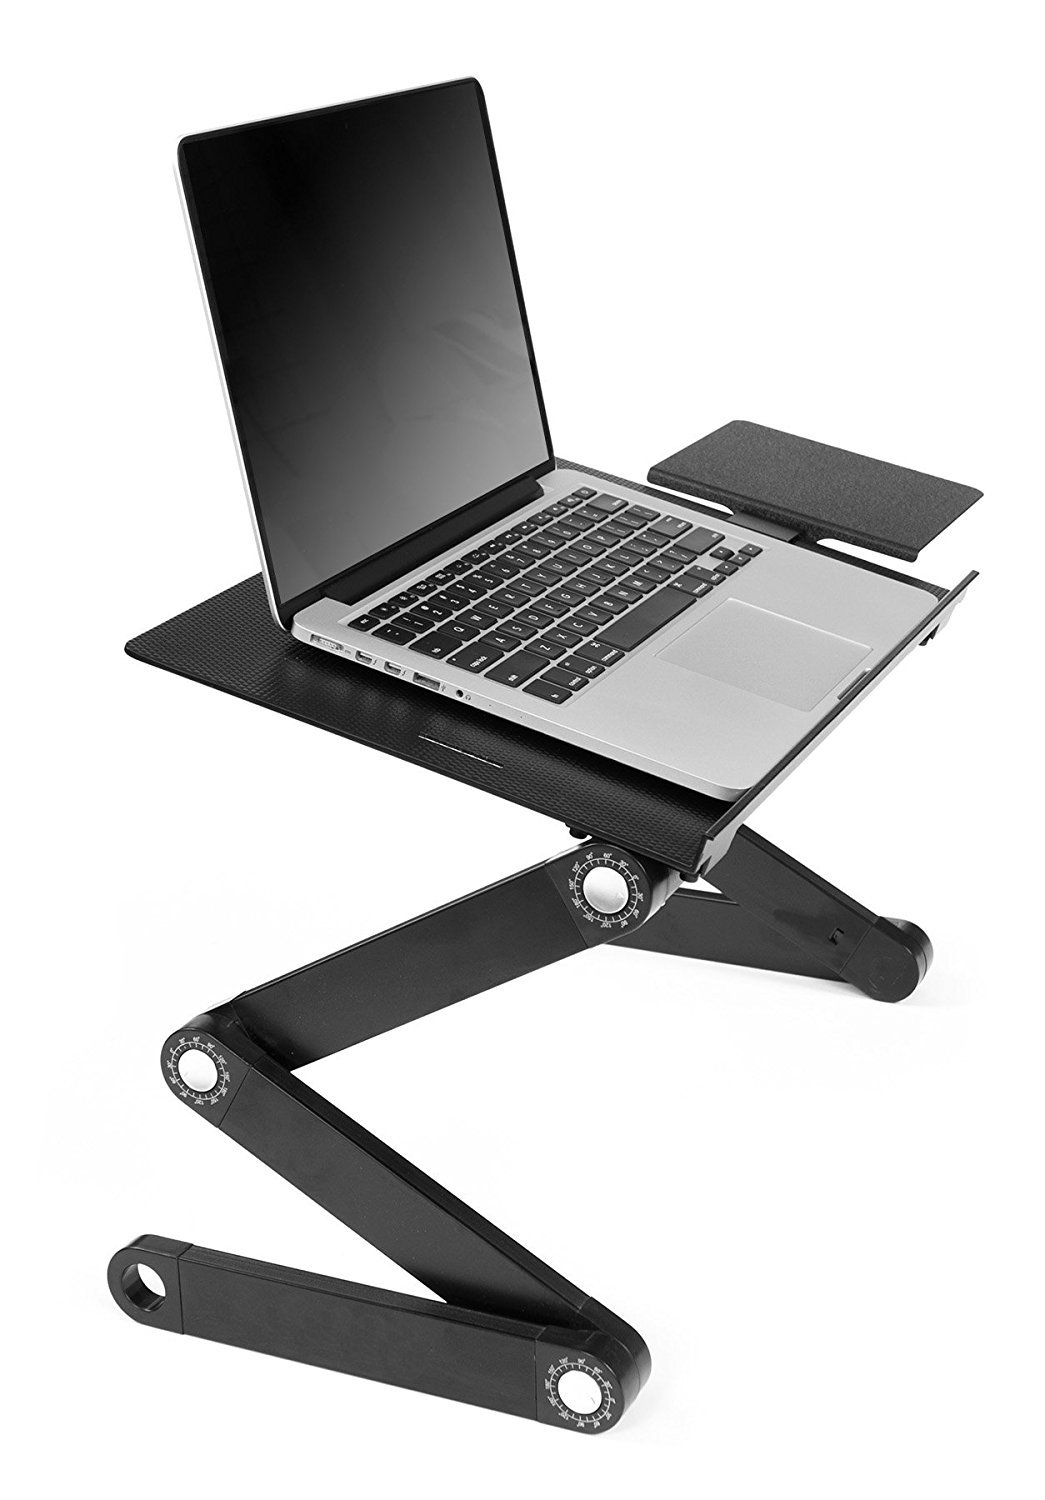 JH-BestCrafts Foldable Adjustable Computer Laptop Desk Stand Table with Mouse Pad Side Mount for Notebook Macbook. Ergonomic Lightweight TV Bed Lap Tray Stand Up / Sitting by JH-Best Crafts (Image #1)